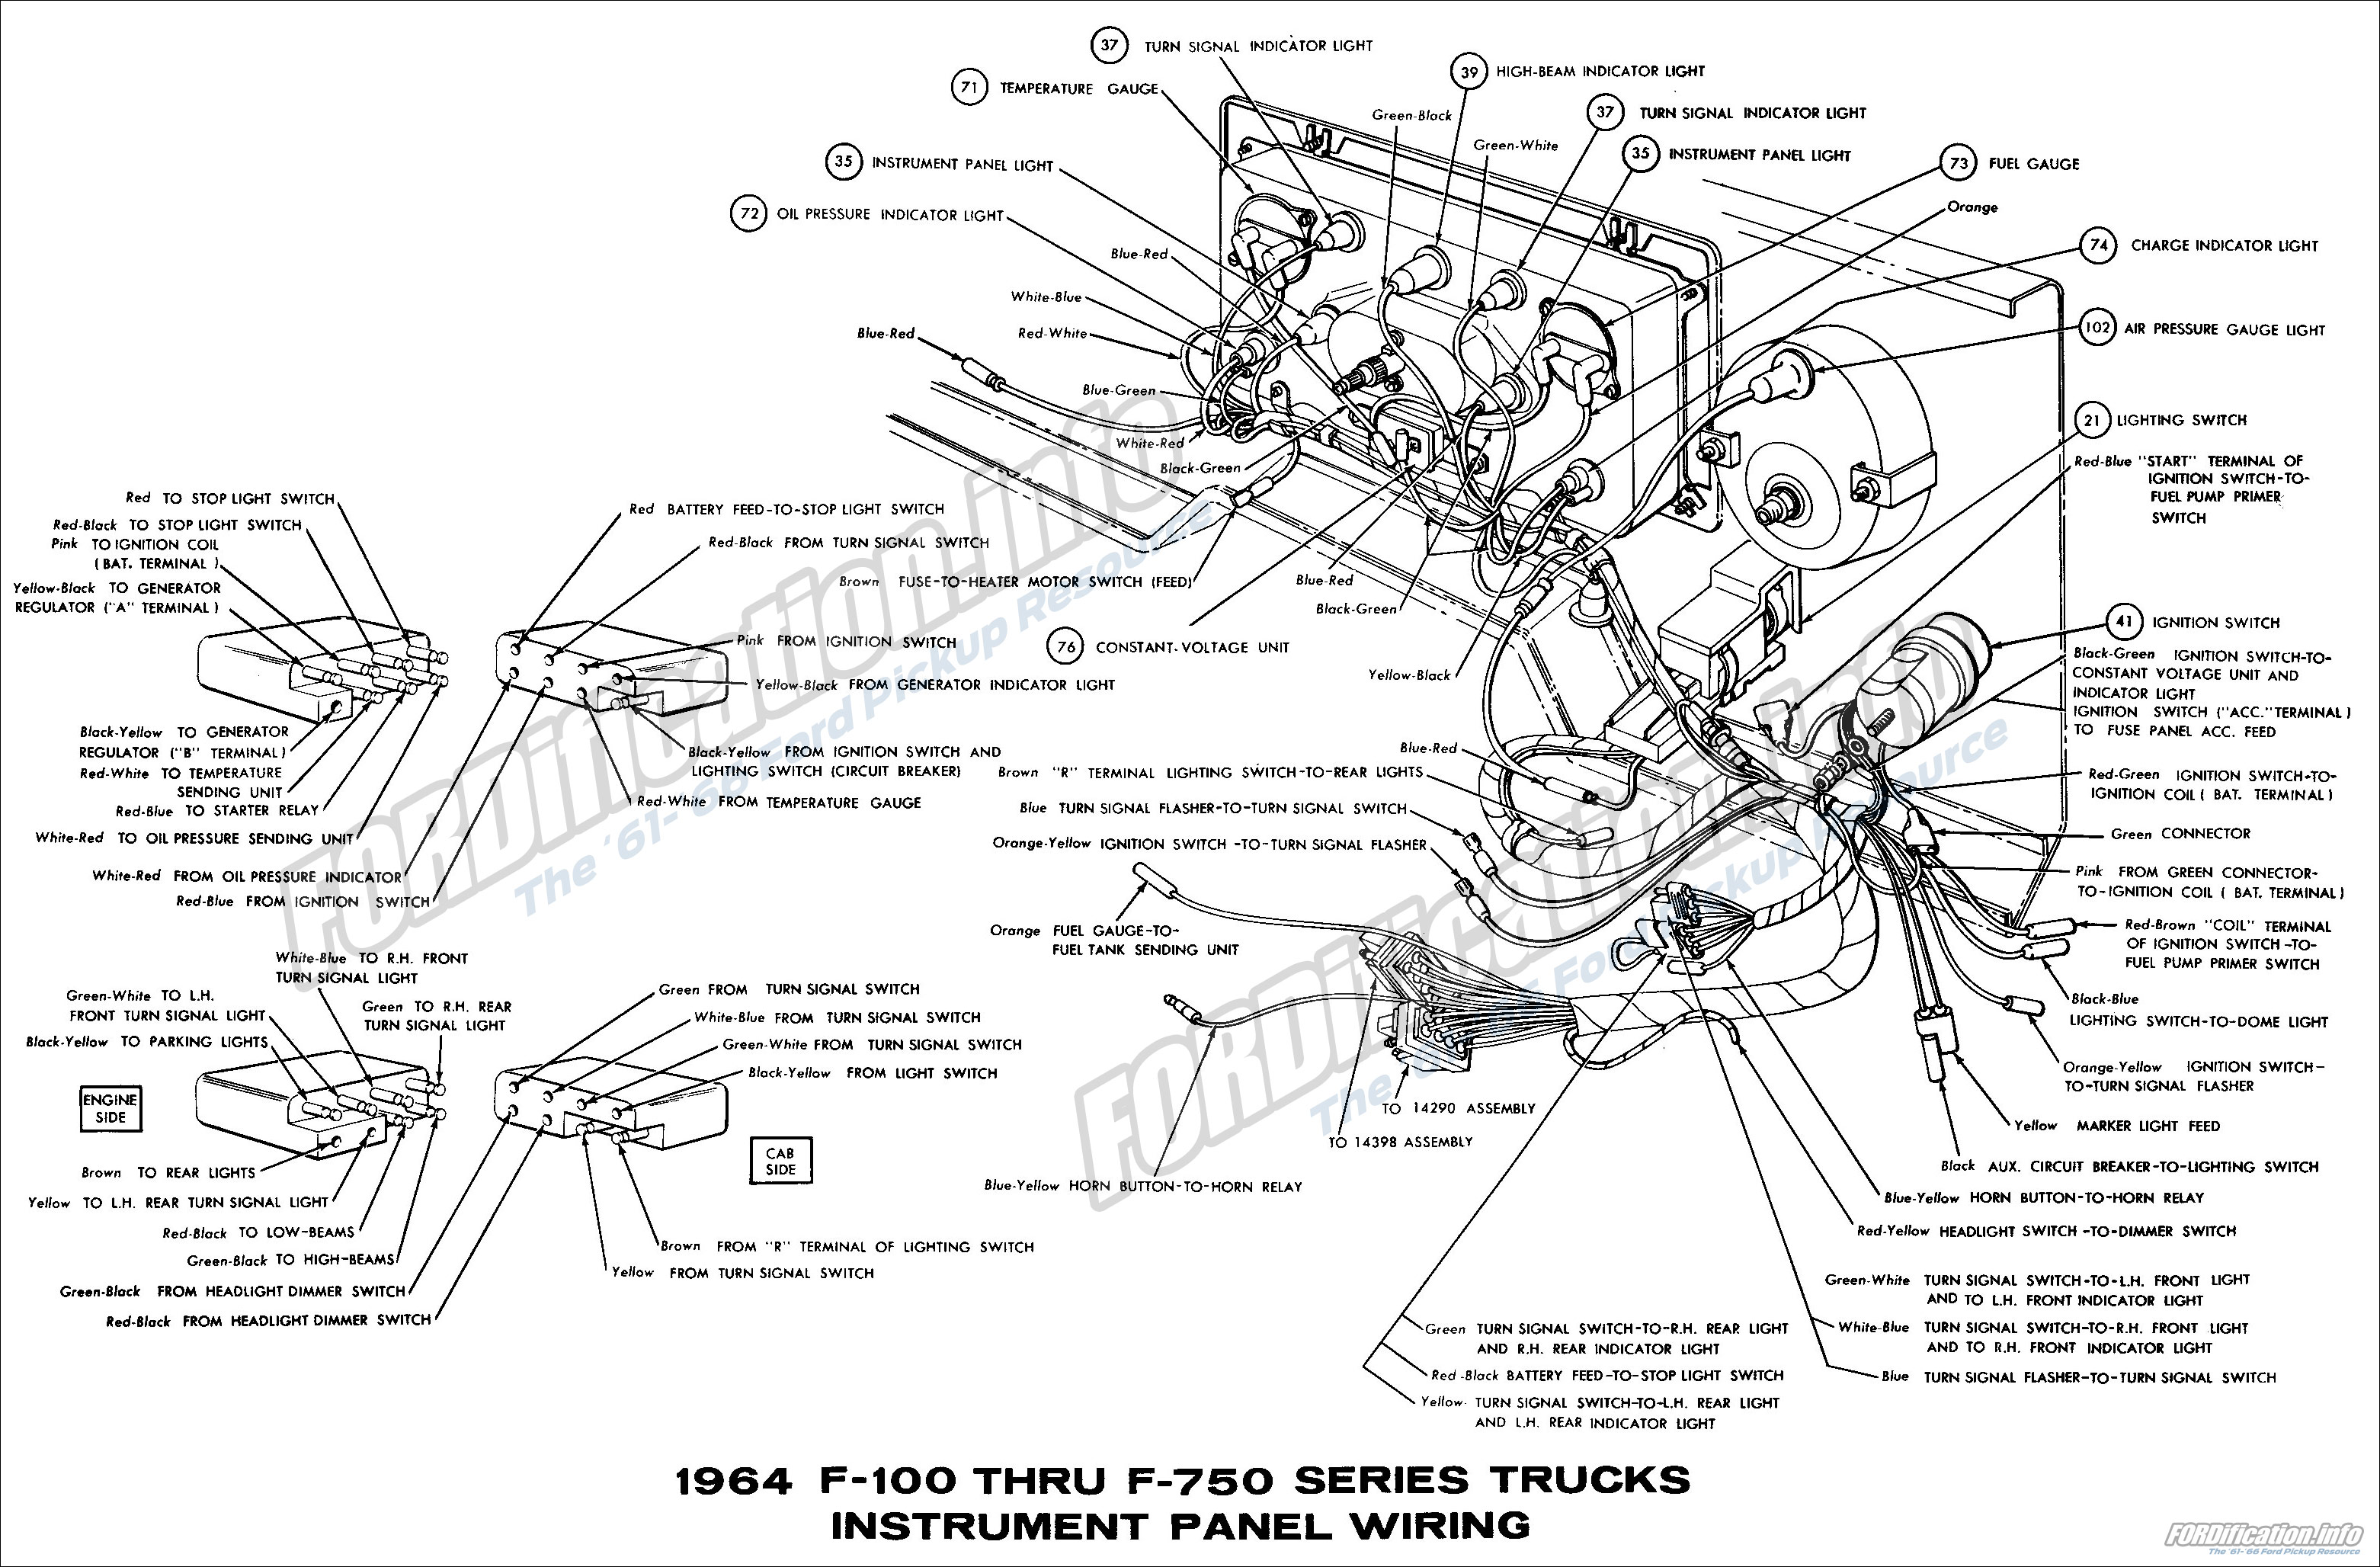 1964 ford f100 wiring diagram just wiring data1964 ford truck wiring diagrams fordification info the \u002761 \u002766 1964 ford f100 frame